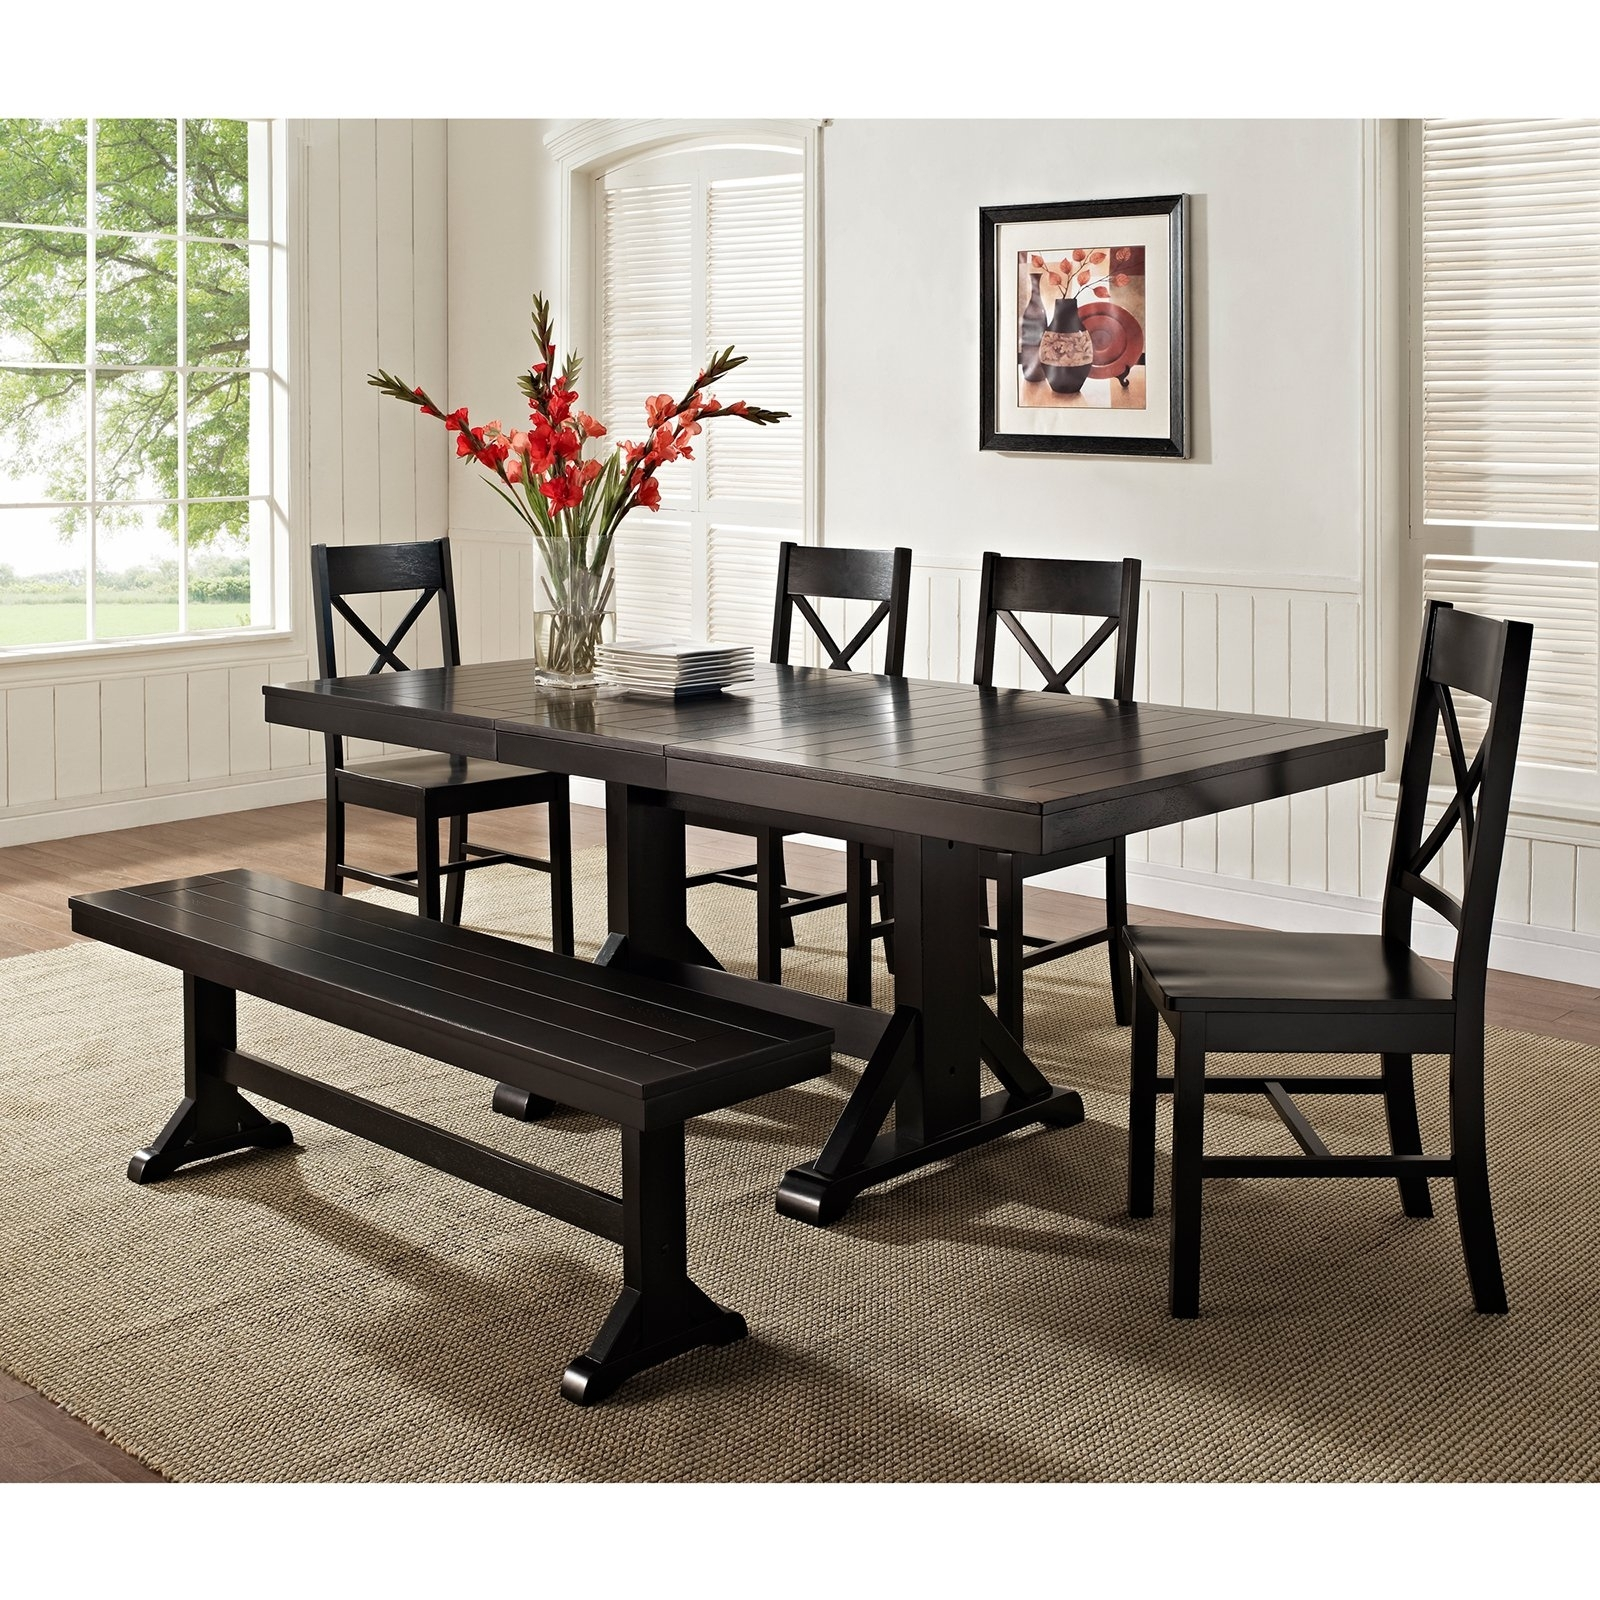 Walker Edison Black 6 Piece Solid Wood Dining Set With Bench With Most Popular Dark Wood Dining Tables And 6 Chairs (Gallery 7 of 25)